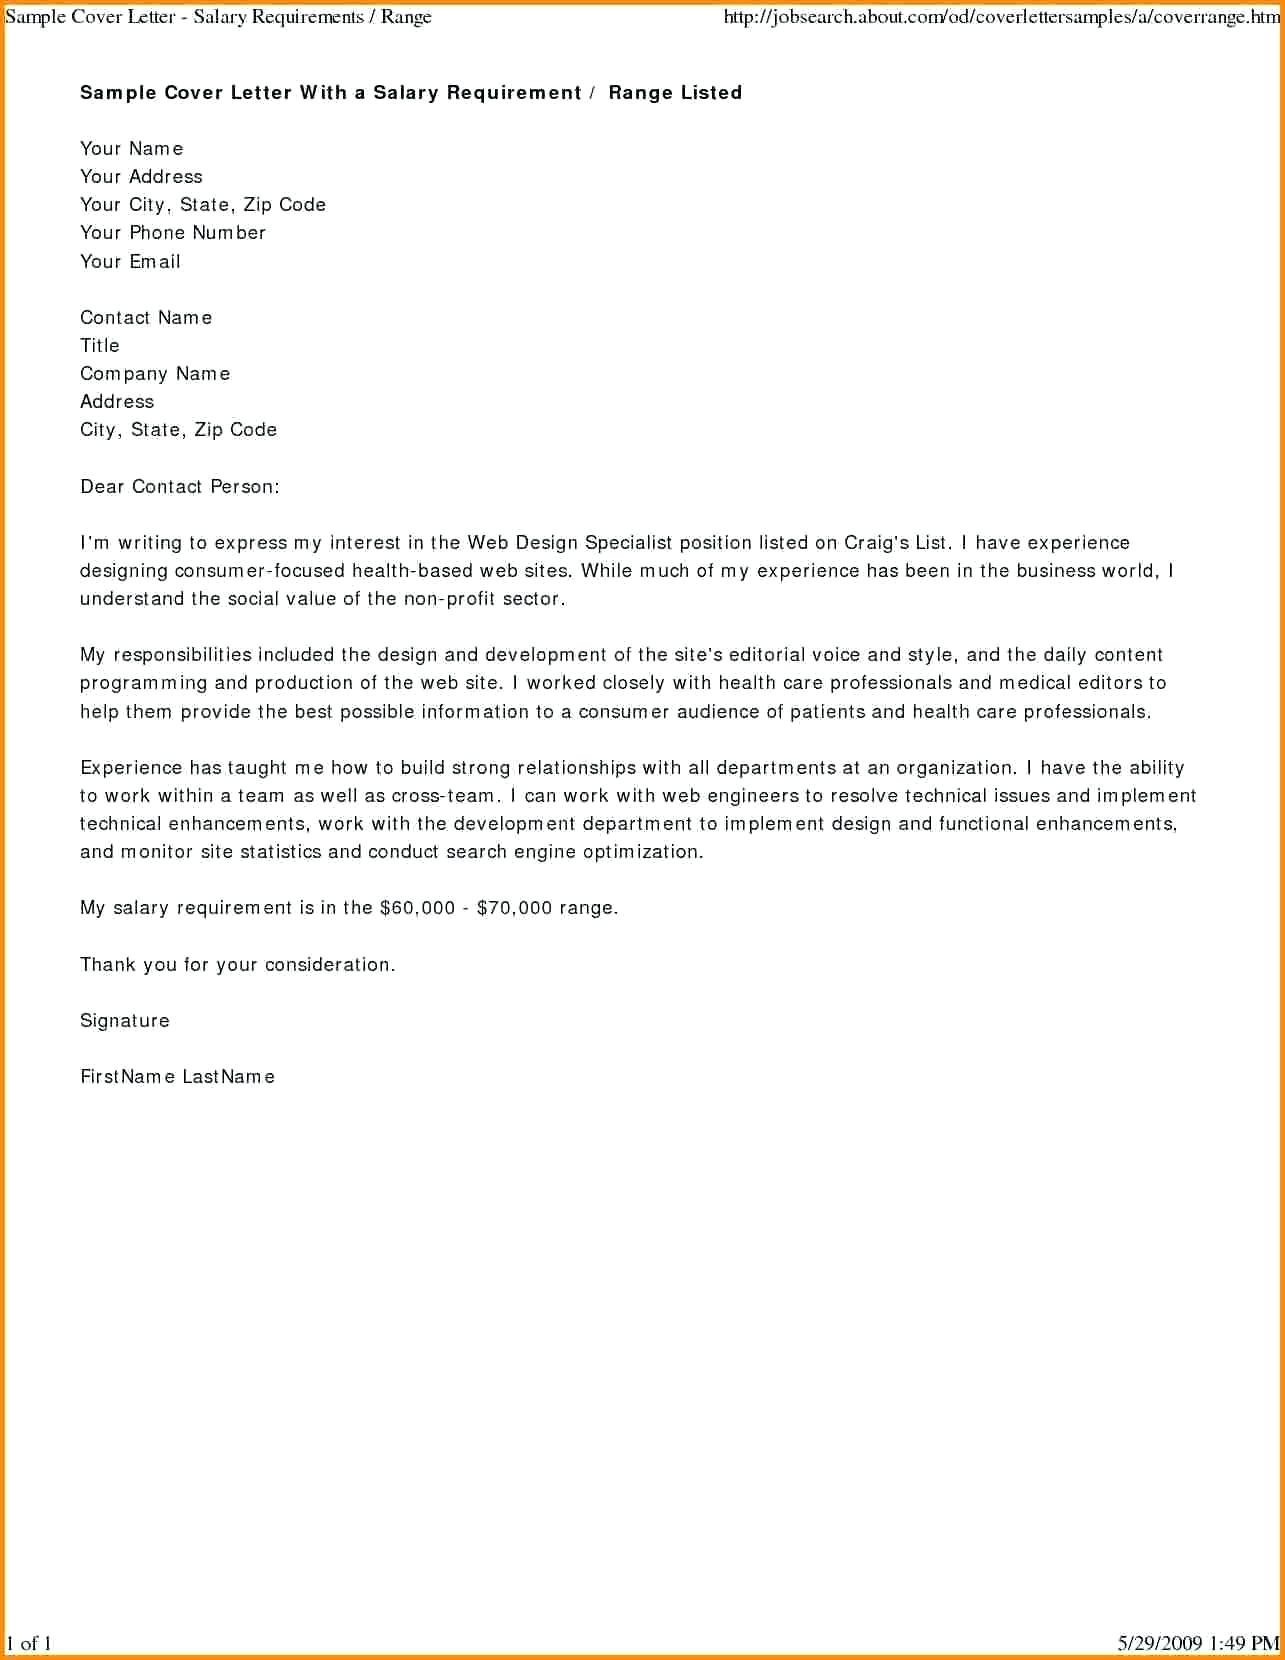 Loan Letter Template - Proposal Template Word Fresh Luxury Business Letter Template Word